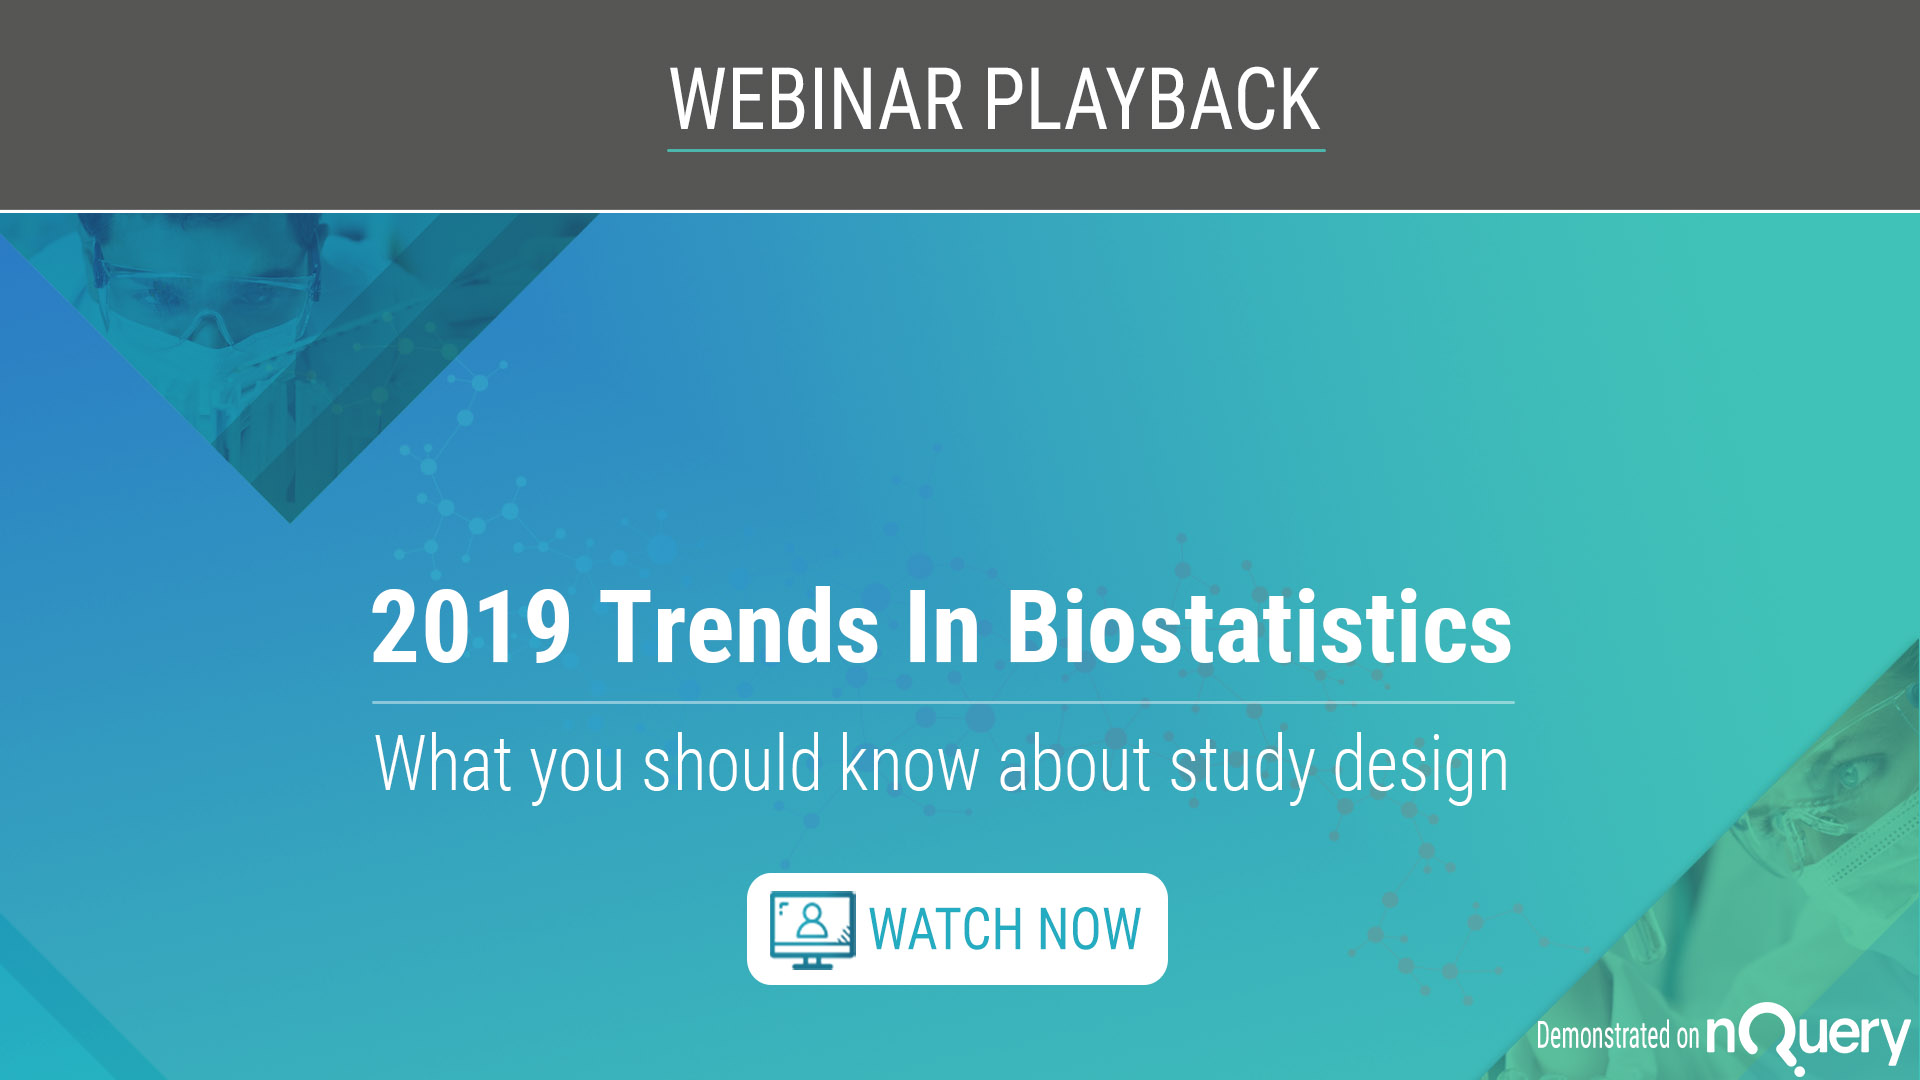 2019-trends-in-biostatistics-what-you-should-know-about-study-designdemand-1920-1080